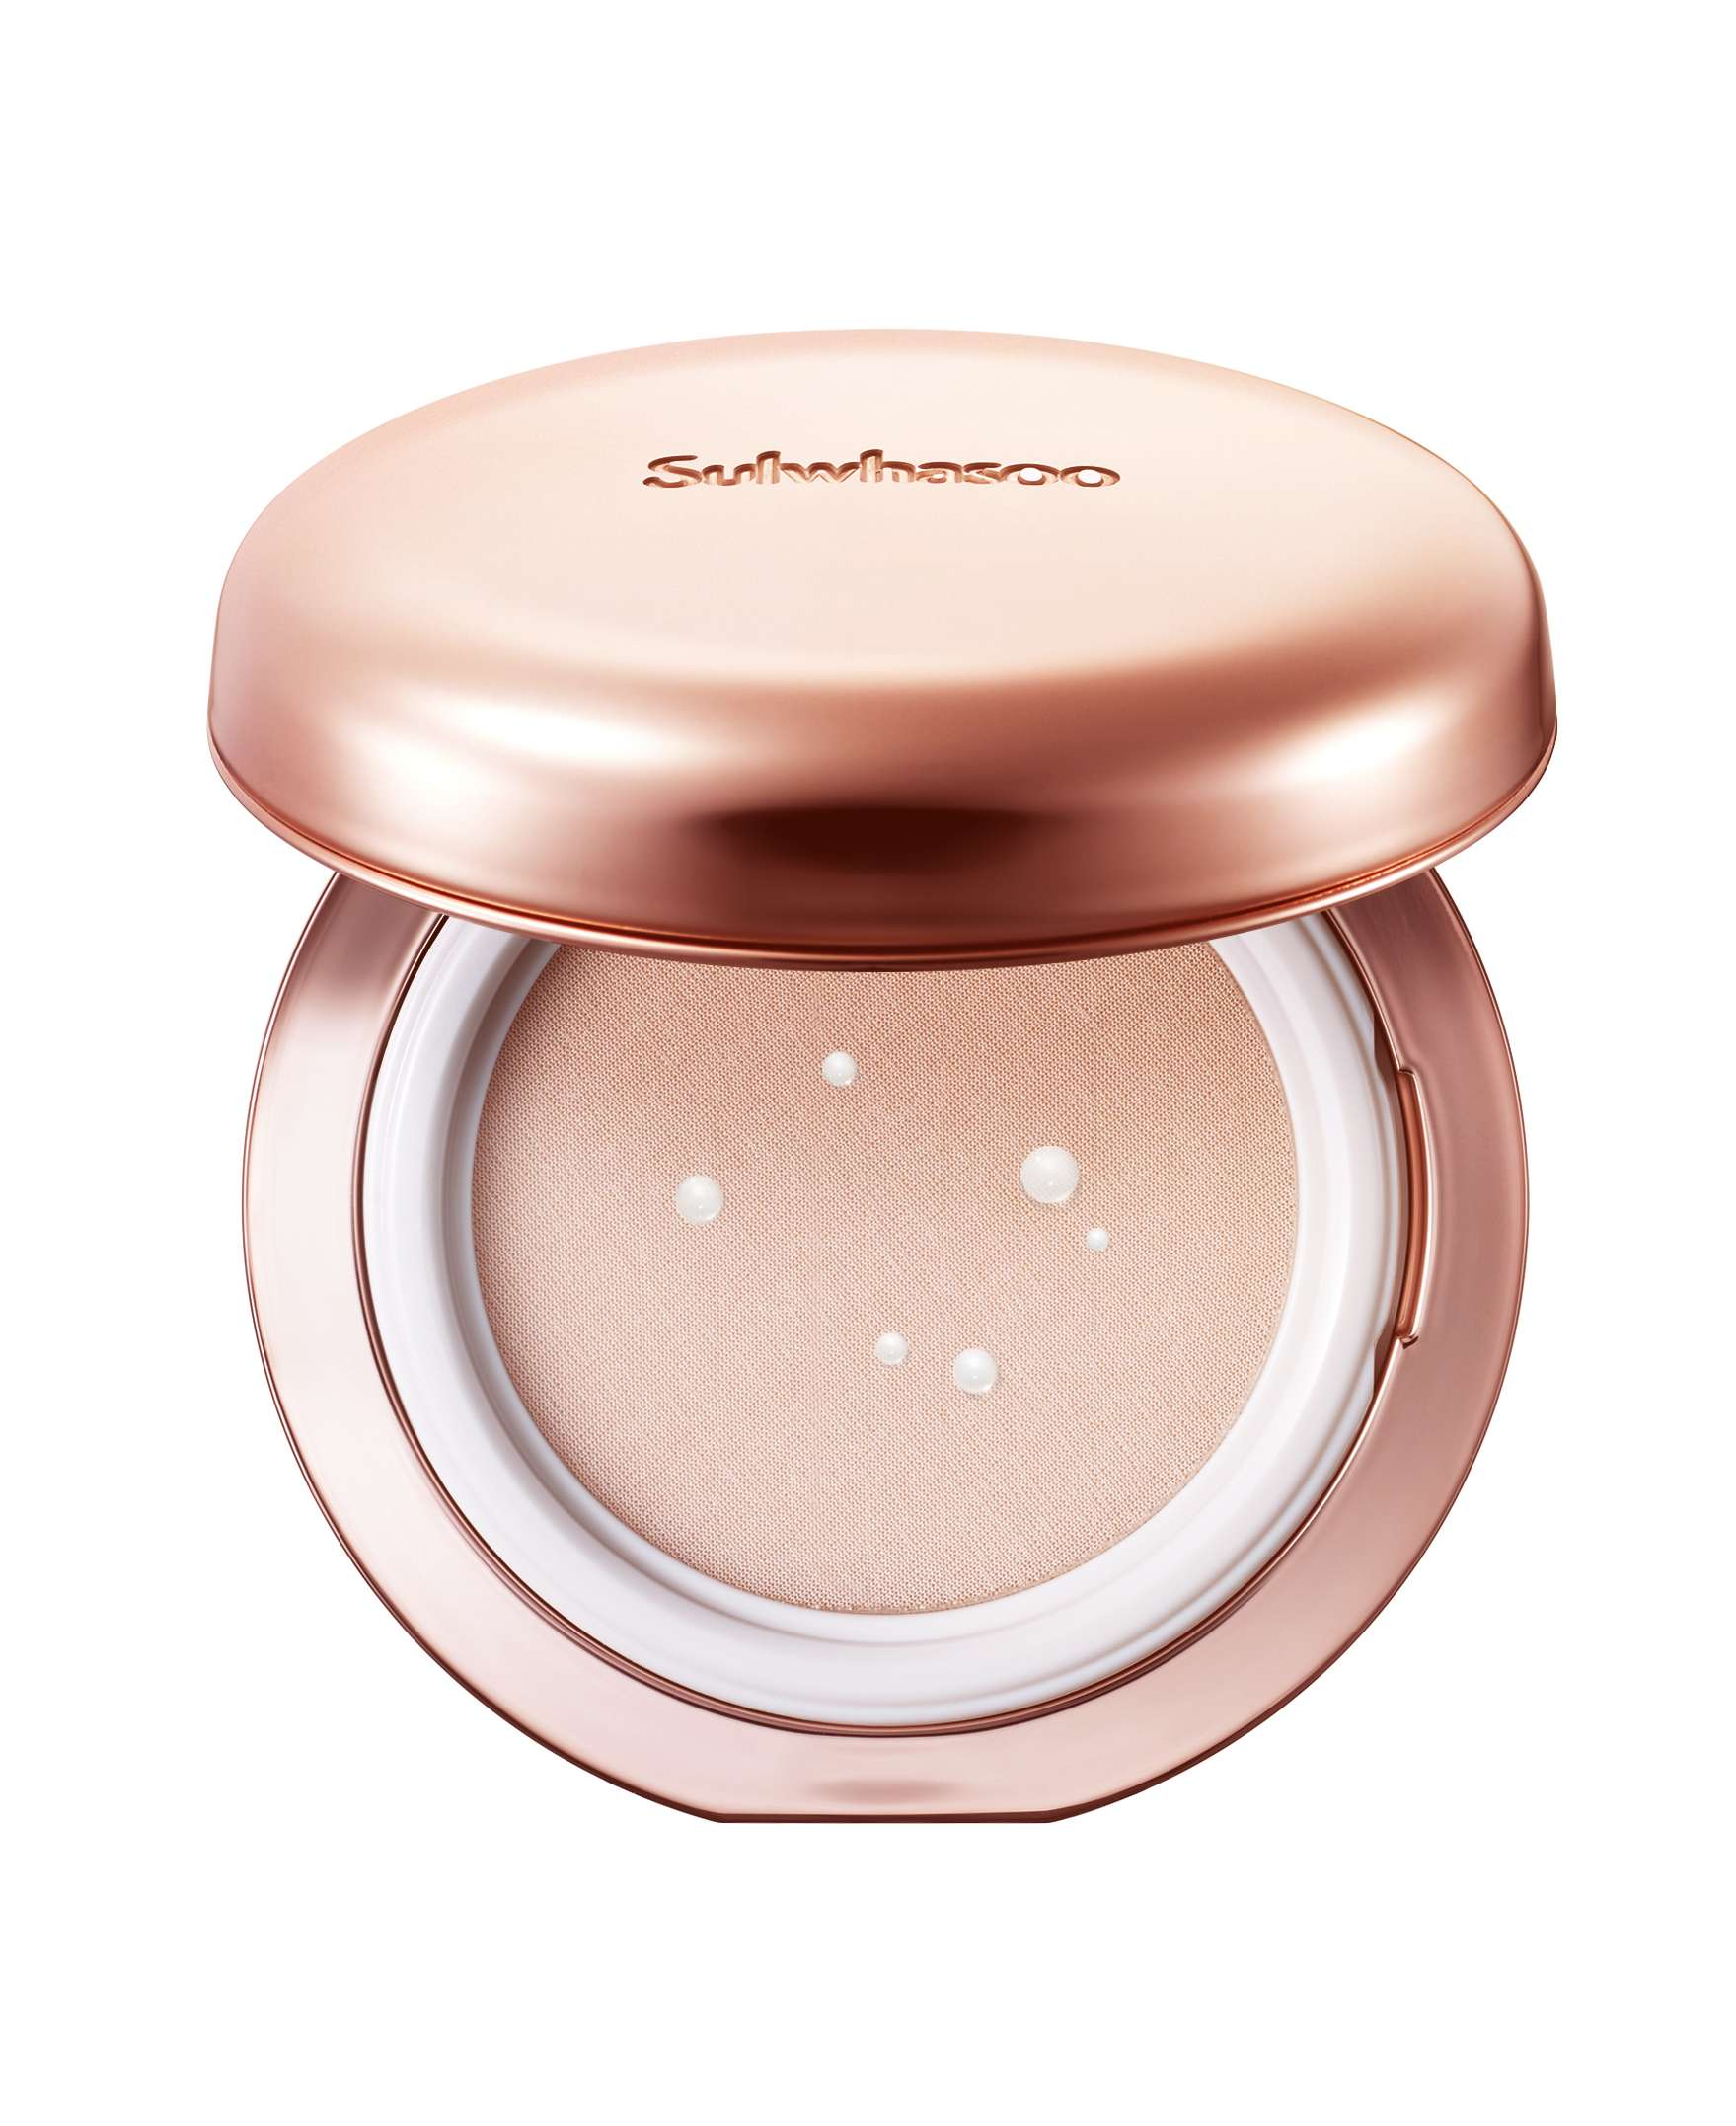 Sulwhasoo Sheer Lasting Gel Cushion & Foundation 11